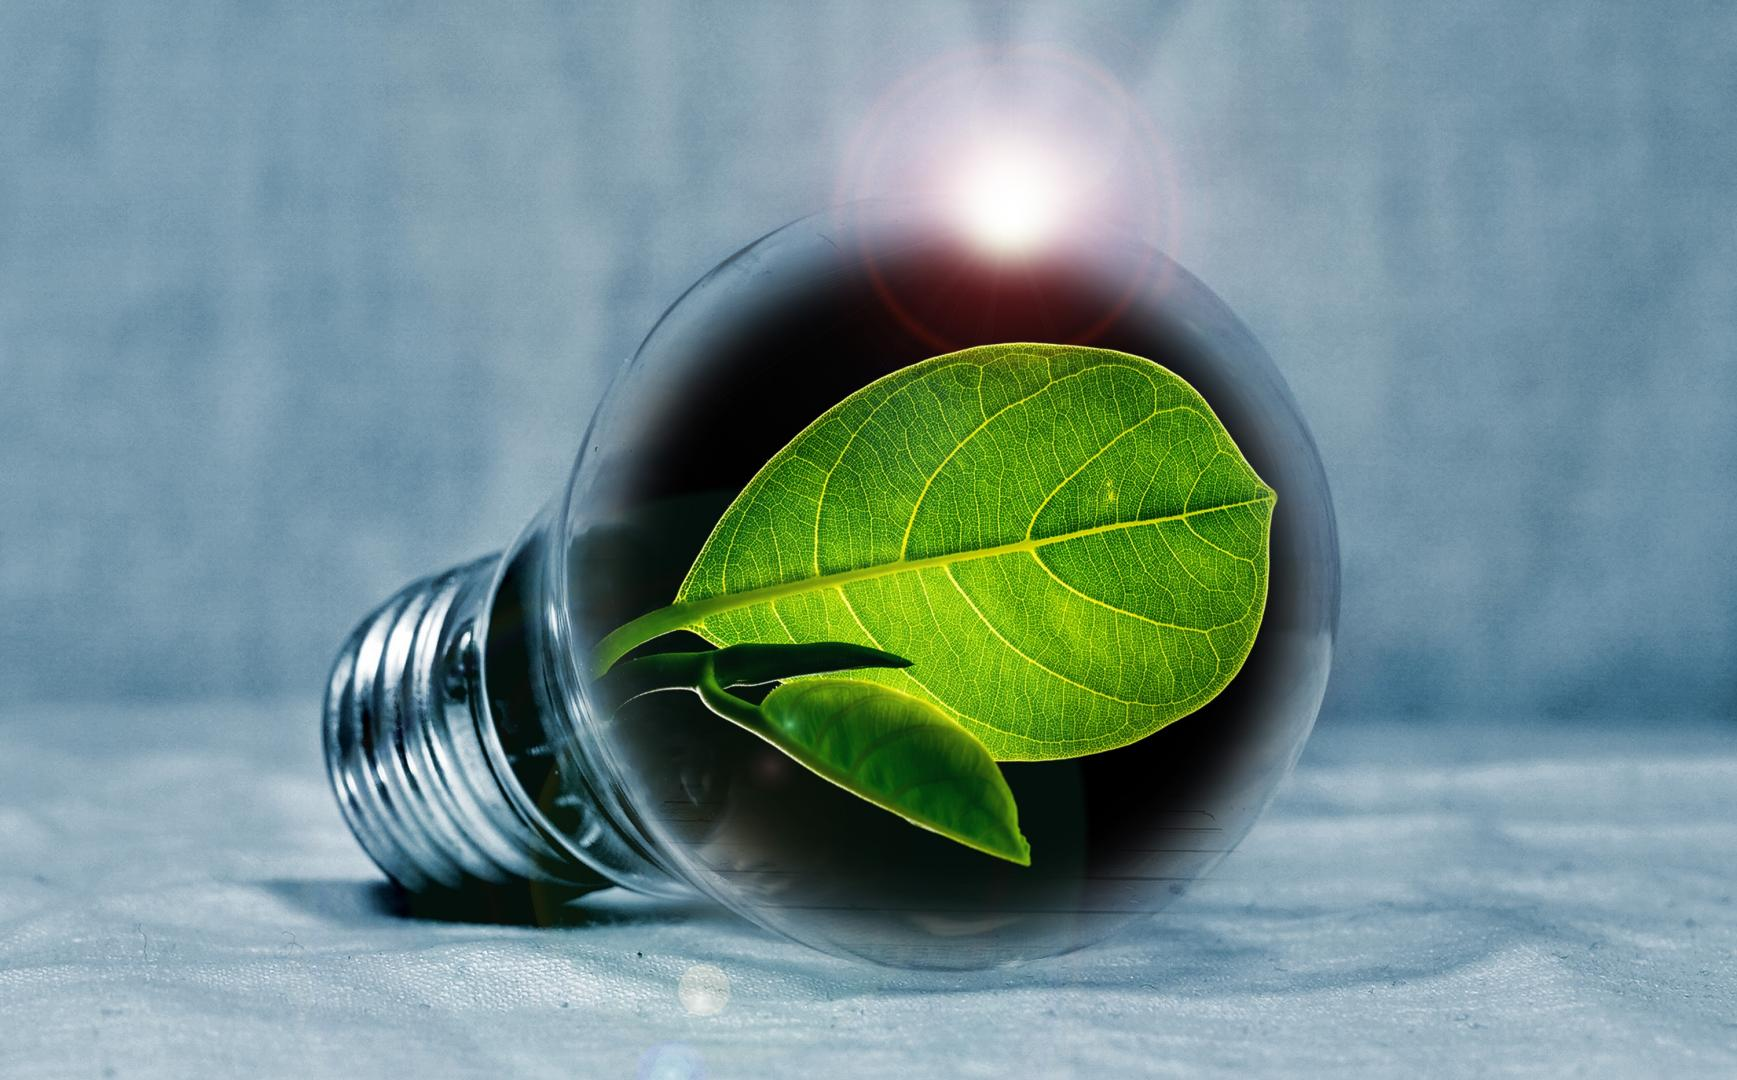 Image of a bulb containing green leaves